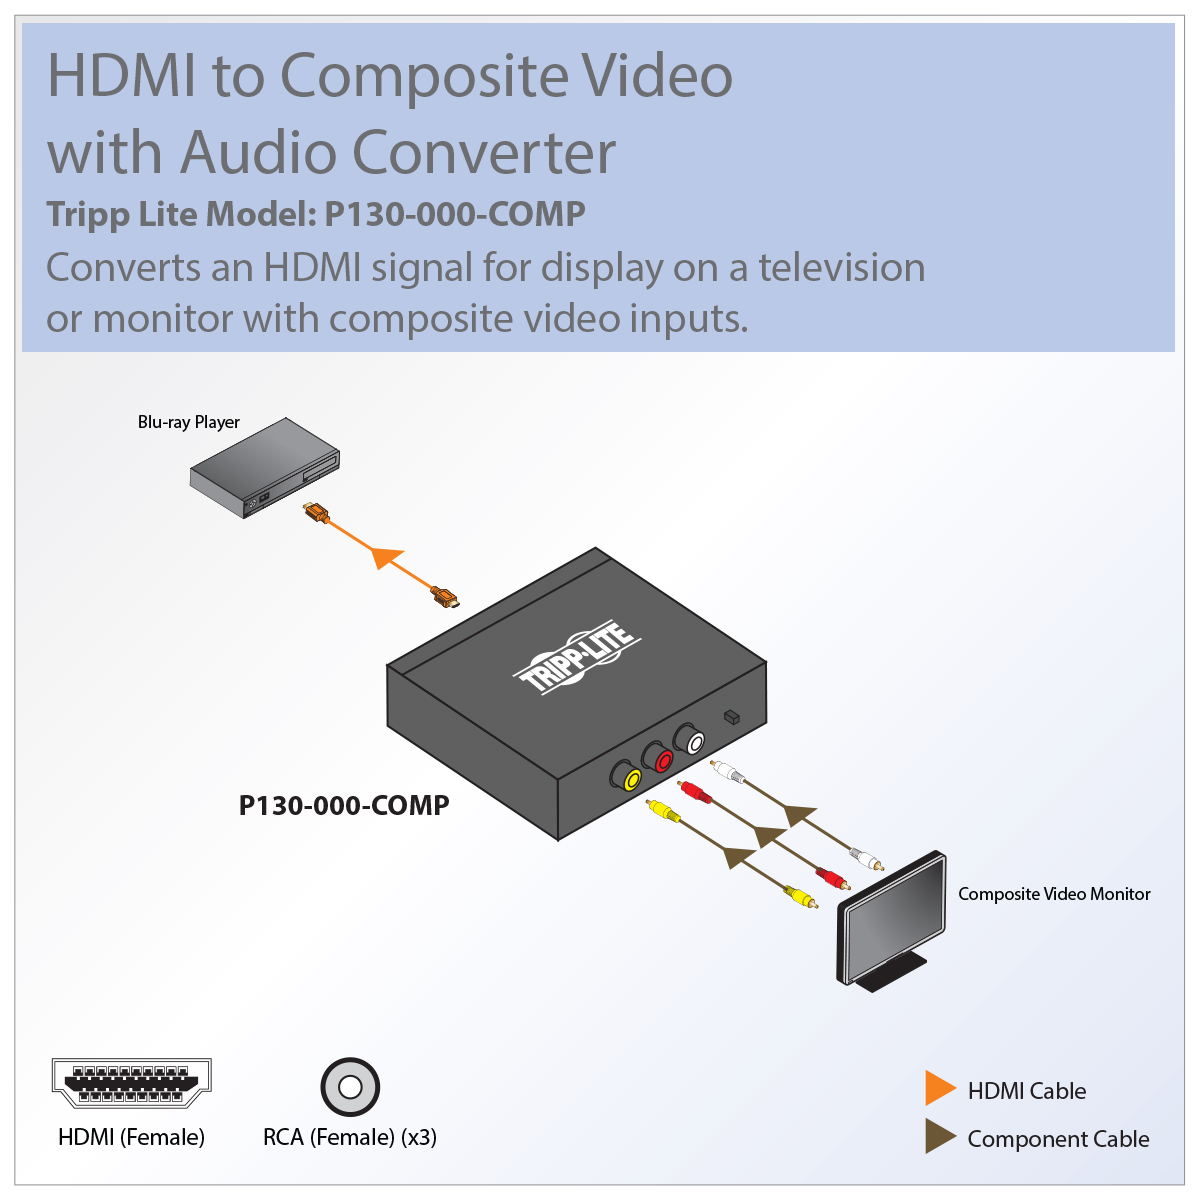 hight resolution of convert hdmi to composite video and audio for compatibility with analog displays